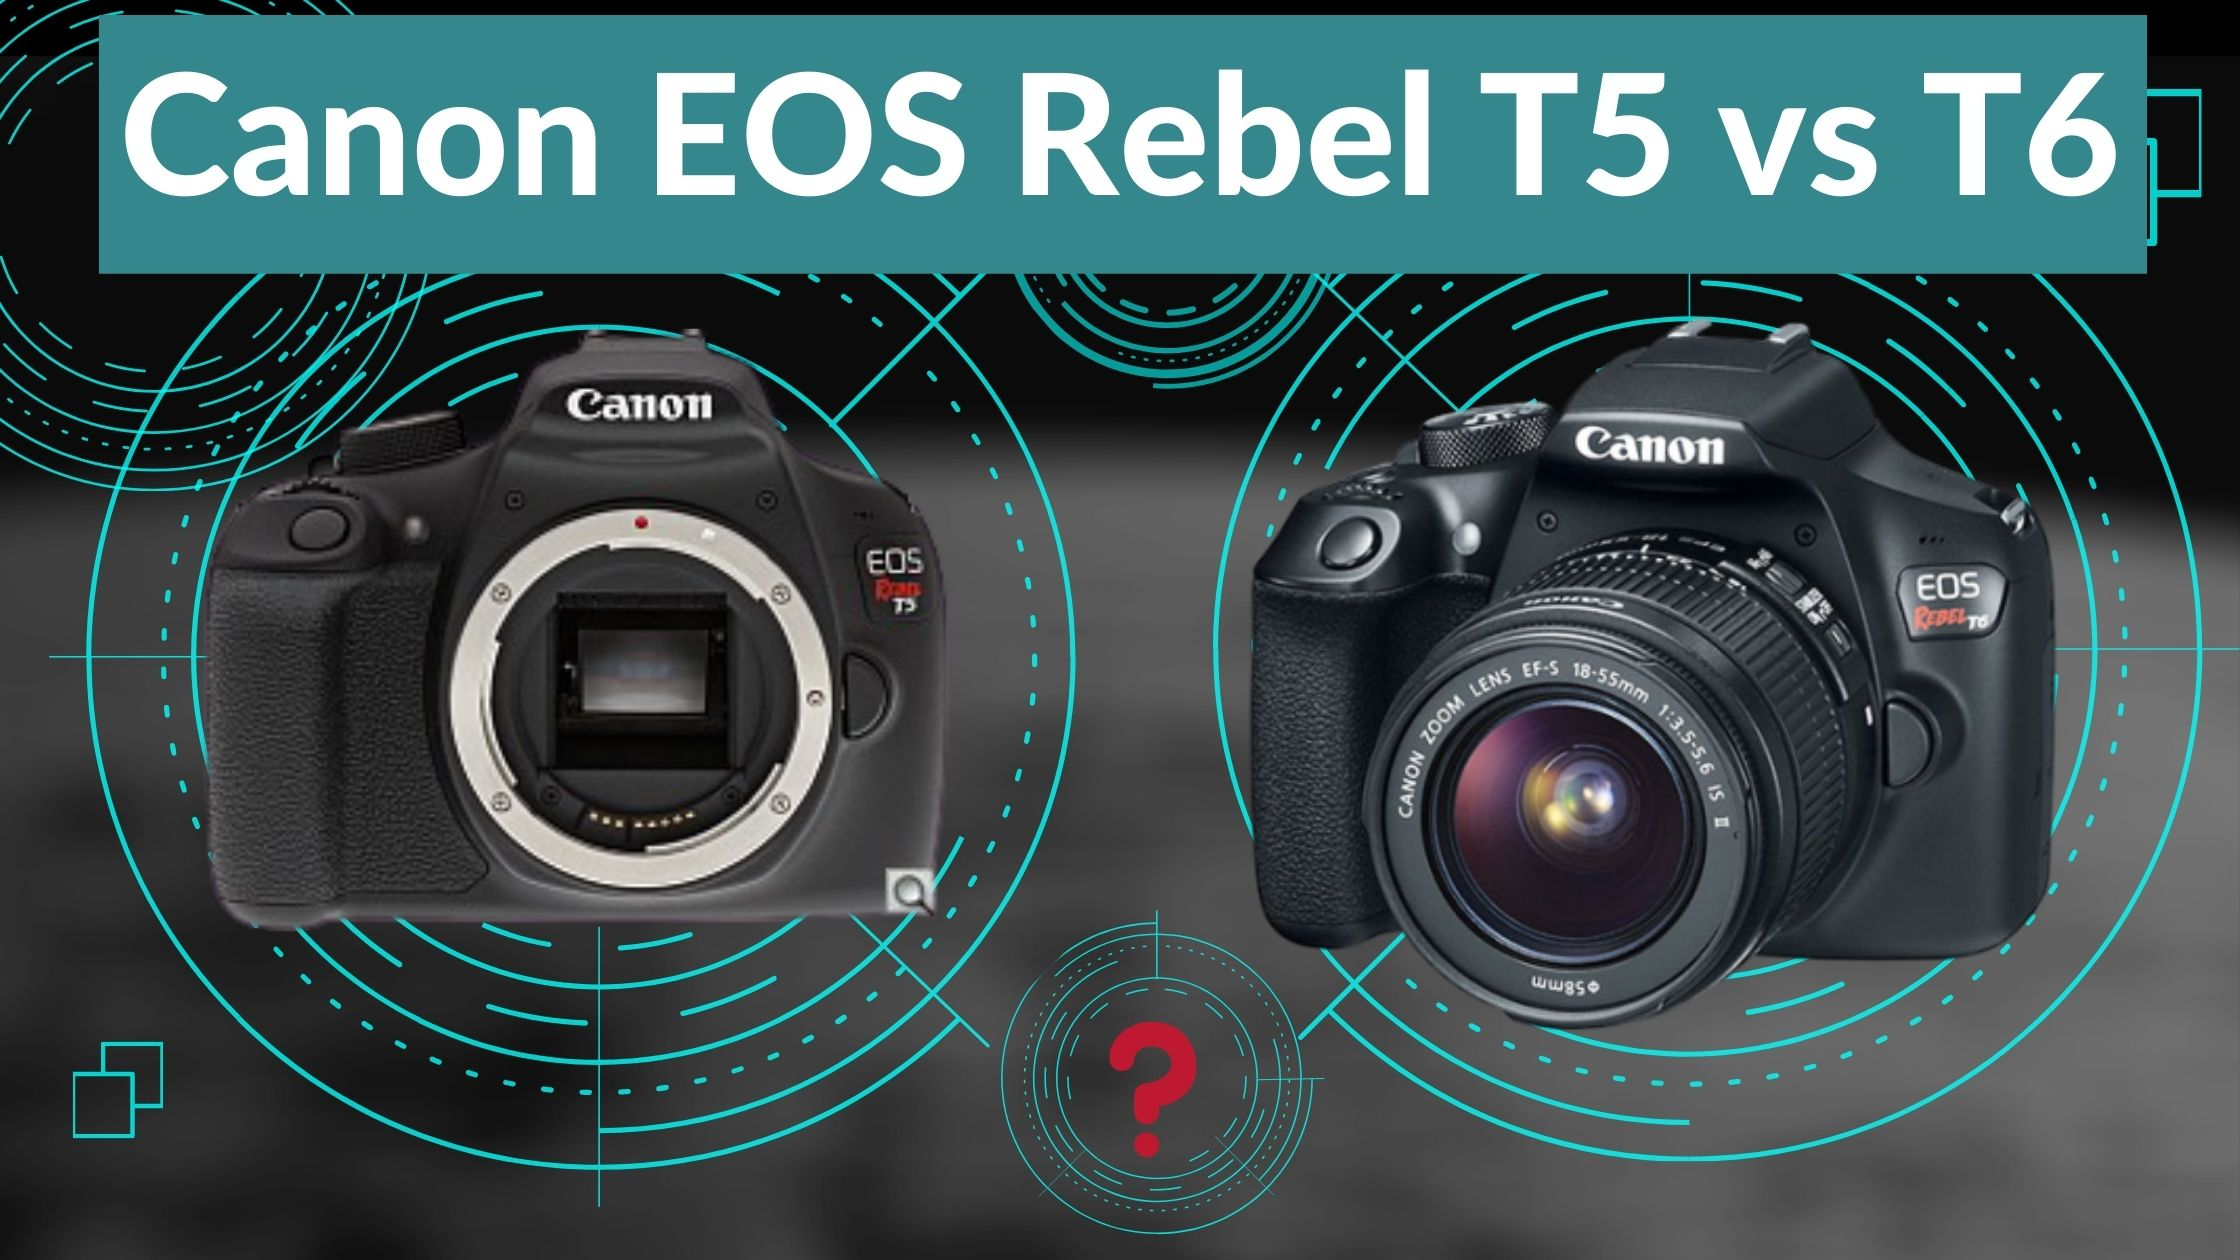 Canon EOS Rebel T5 vs T6